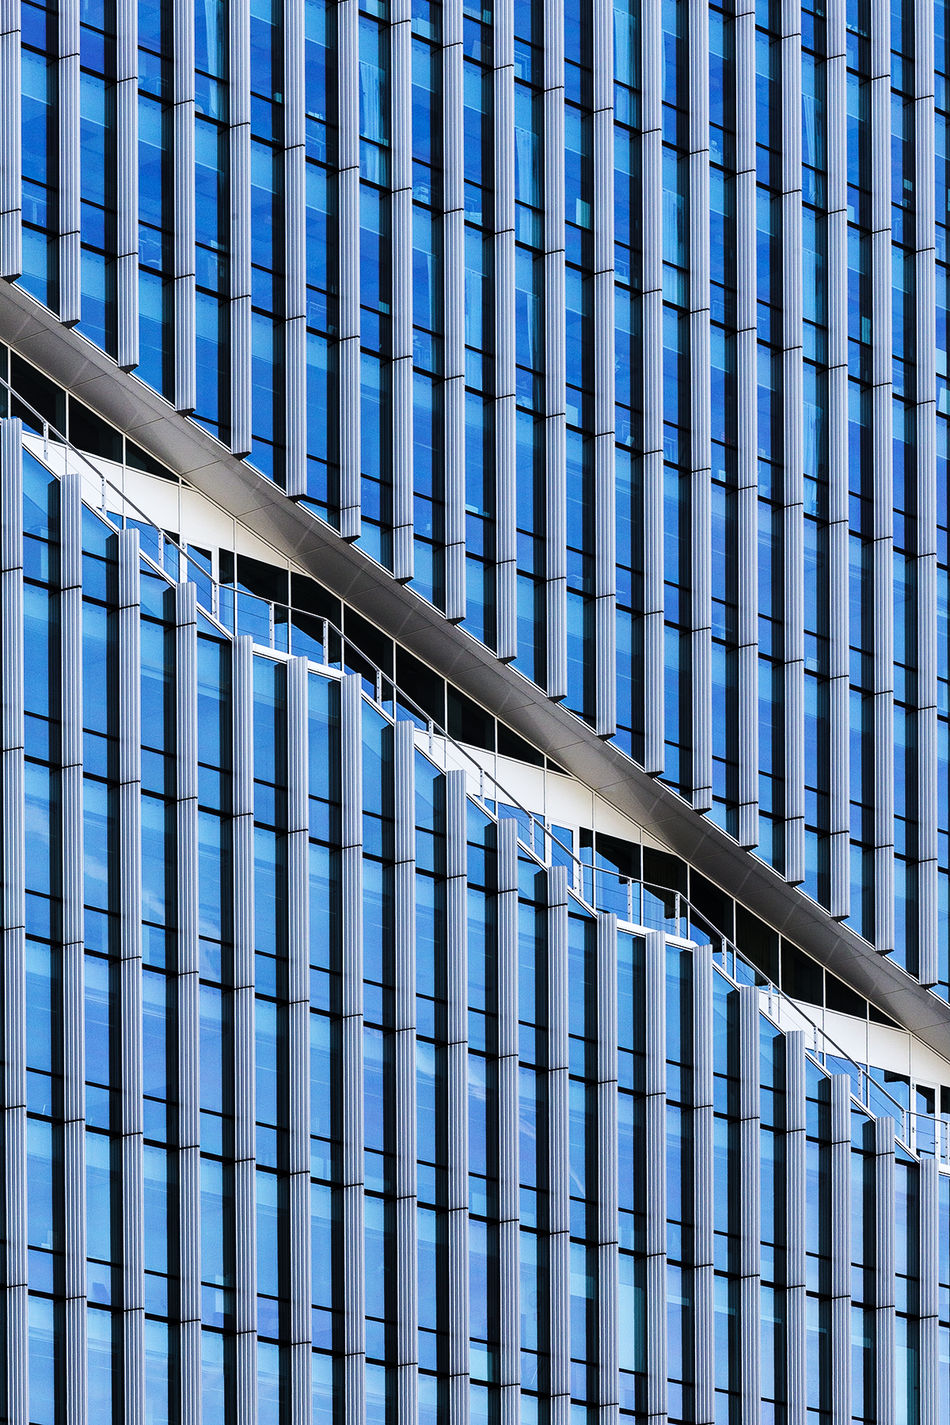 Architectural Feature Architecture Architecture Architecture_collection Backgrounds Blue Building Exterior Built Structure City Day EyeEm Best Edits EyeEm Best Shots EyeEmBestPics Eyeemgroupnederland EyeEmNewHere Eyemphotography Full Frame No People Office Building Exterior Outdoors Repetition Sky Skyscraper